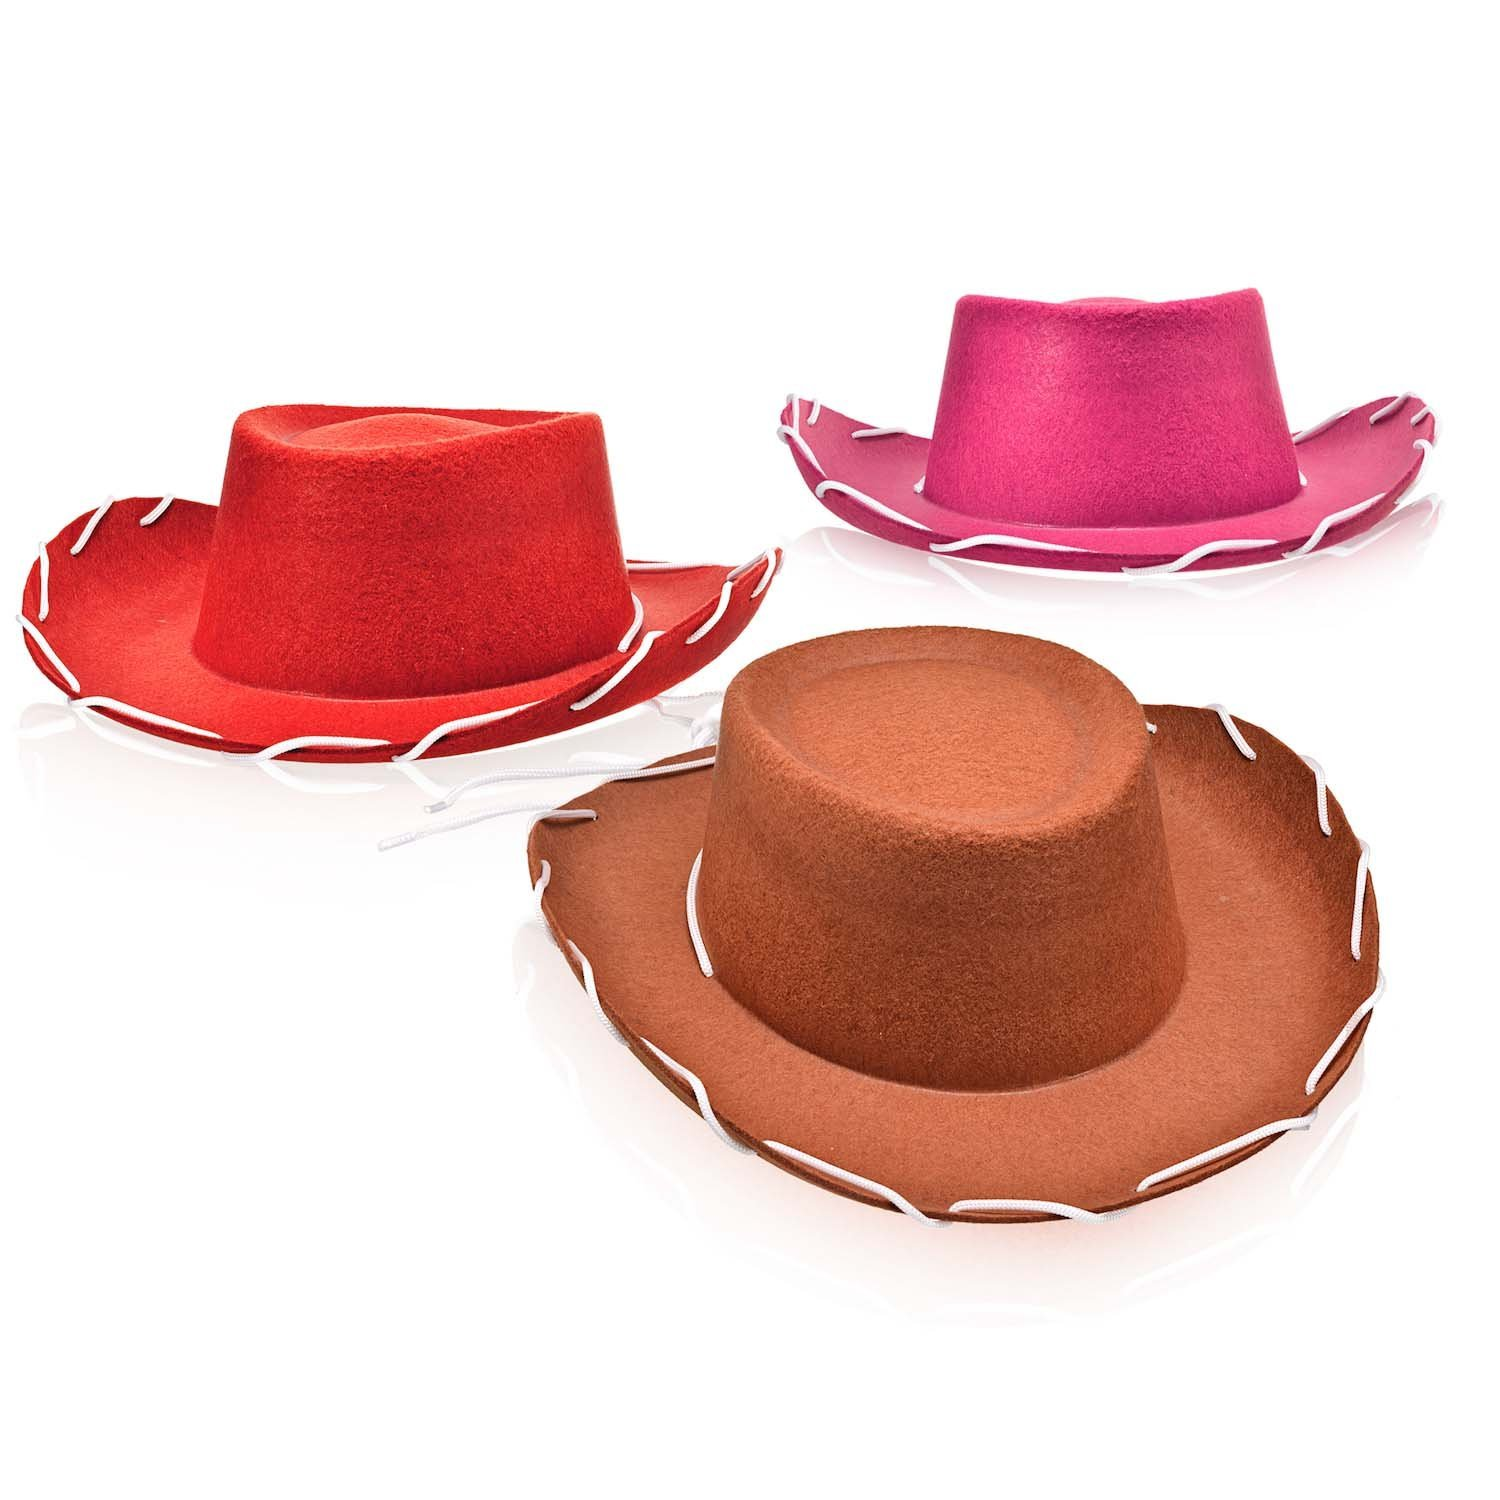 Bottles N Bags Set of 3 Children's Western Style Woody Felt Cowboy Hats in Pink, Red and Brown for Pretend Play